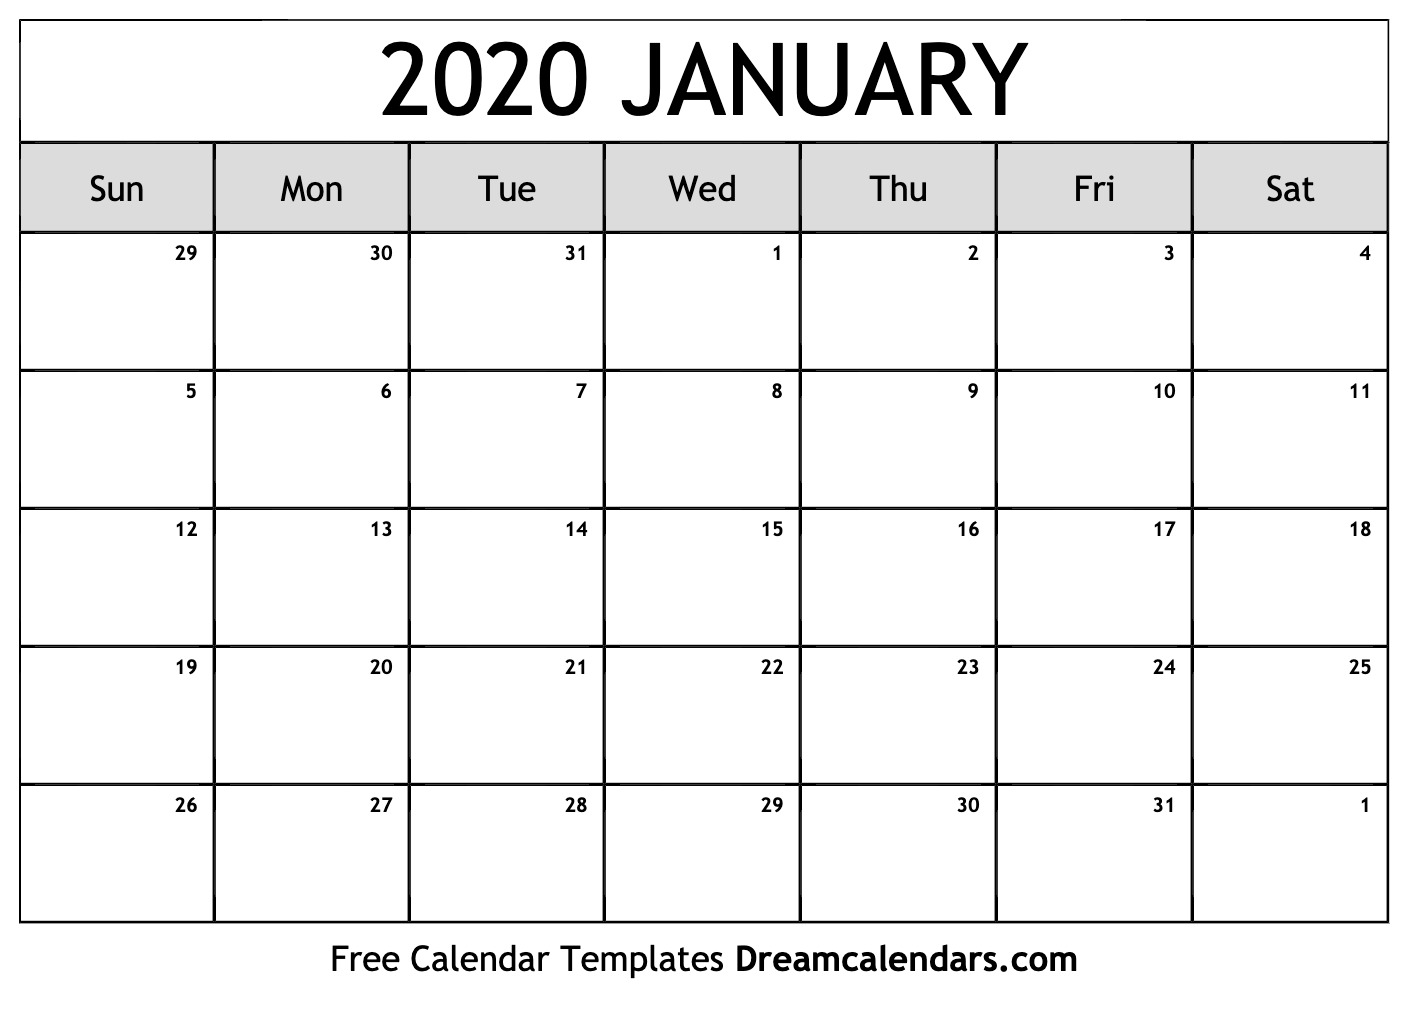 Calendar Template January 2020 Printable January 2020 Calendar